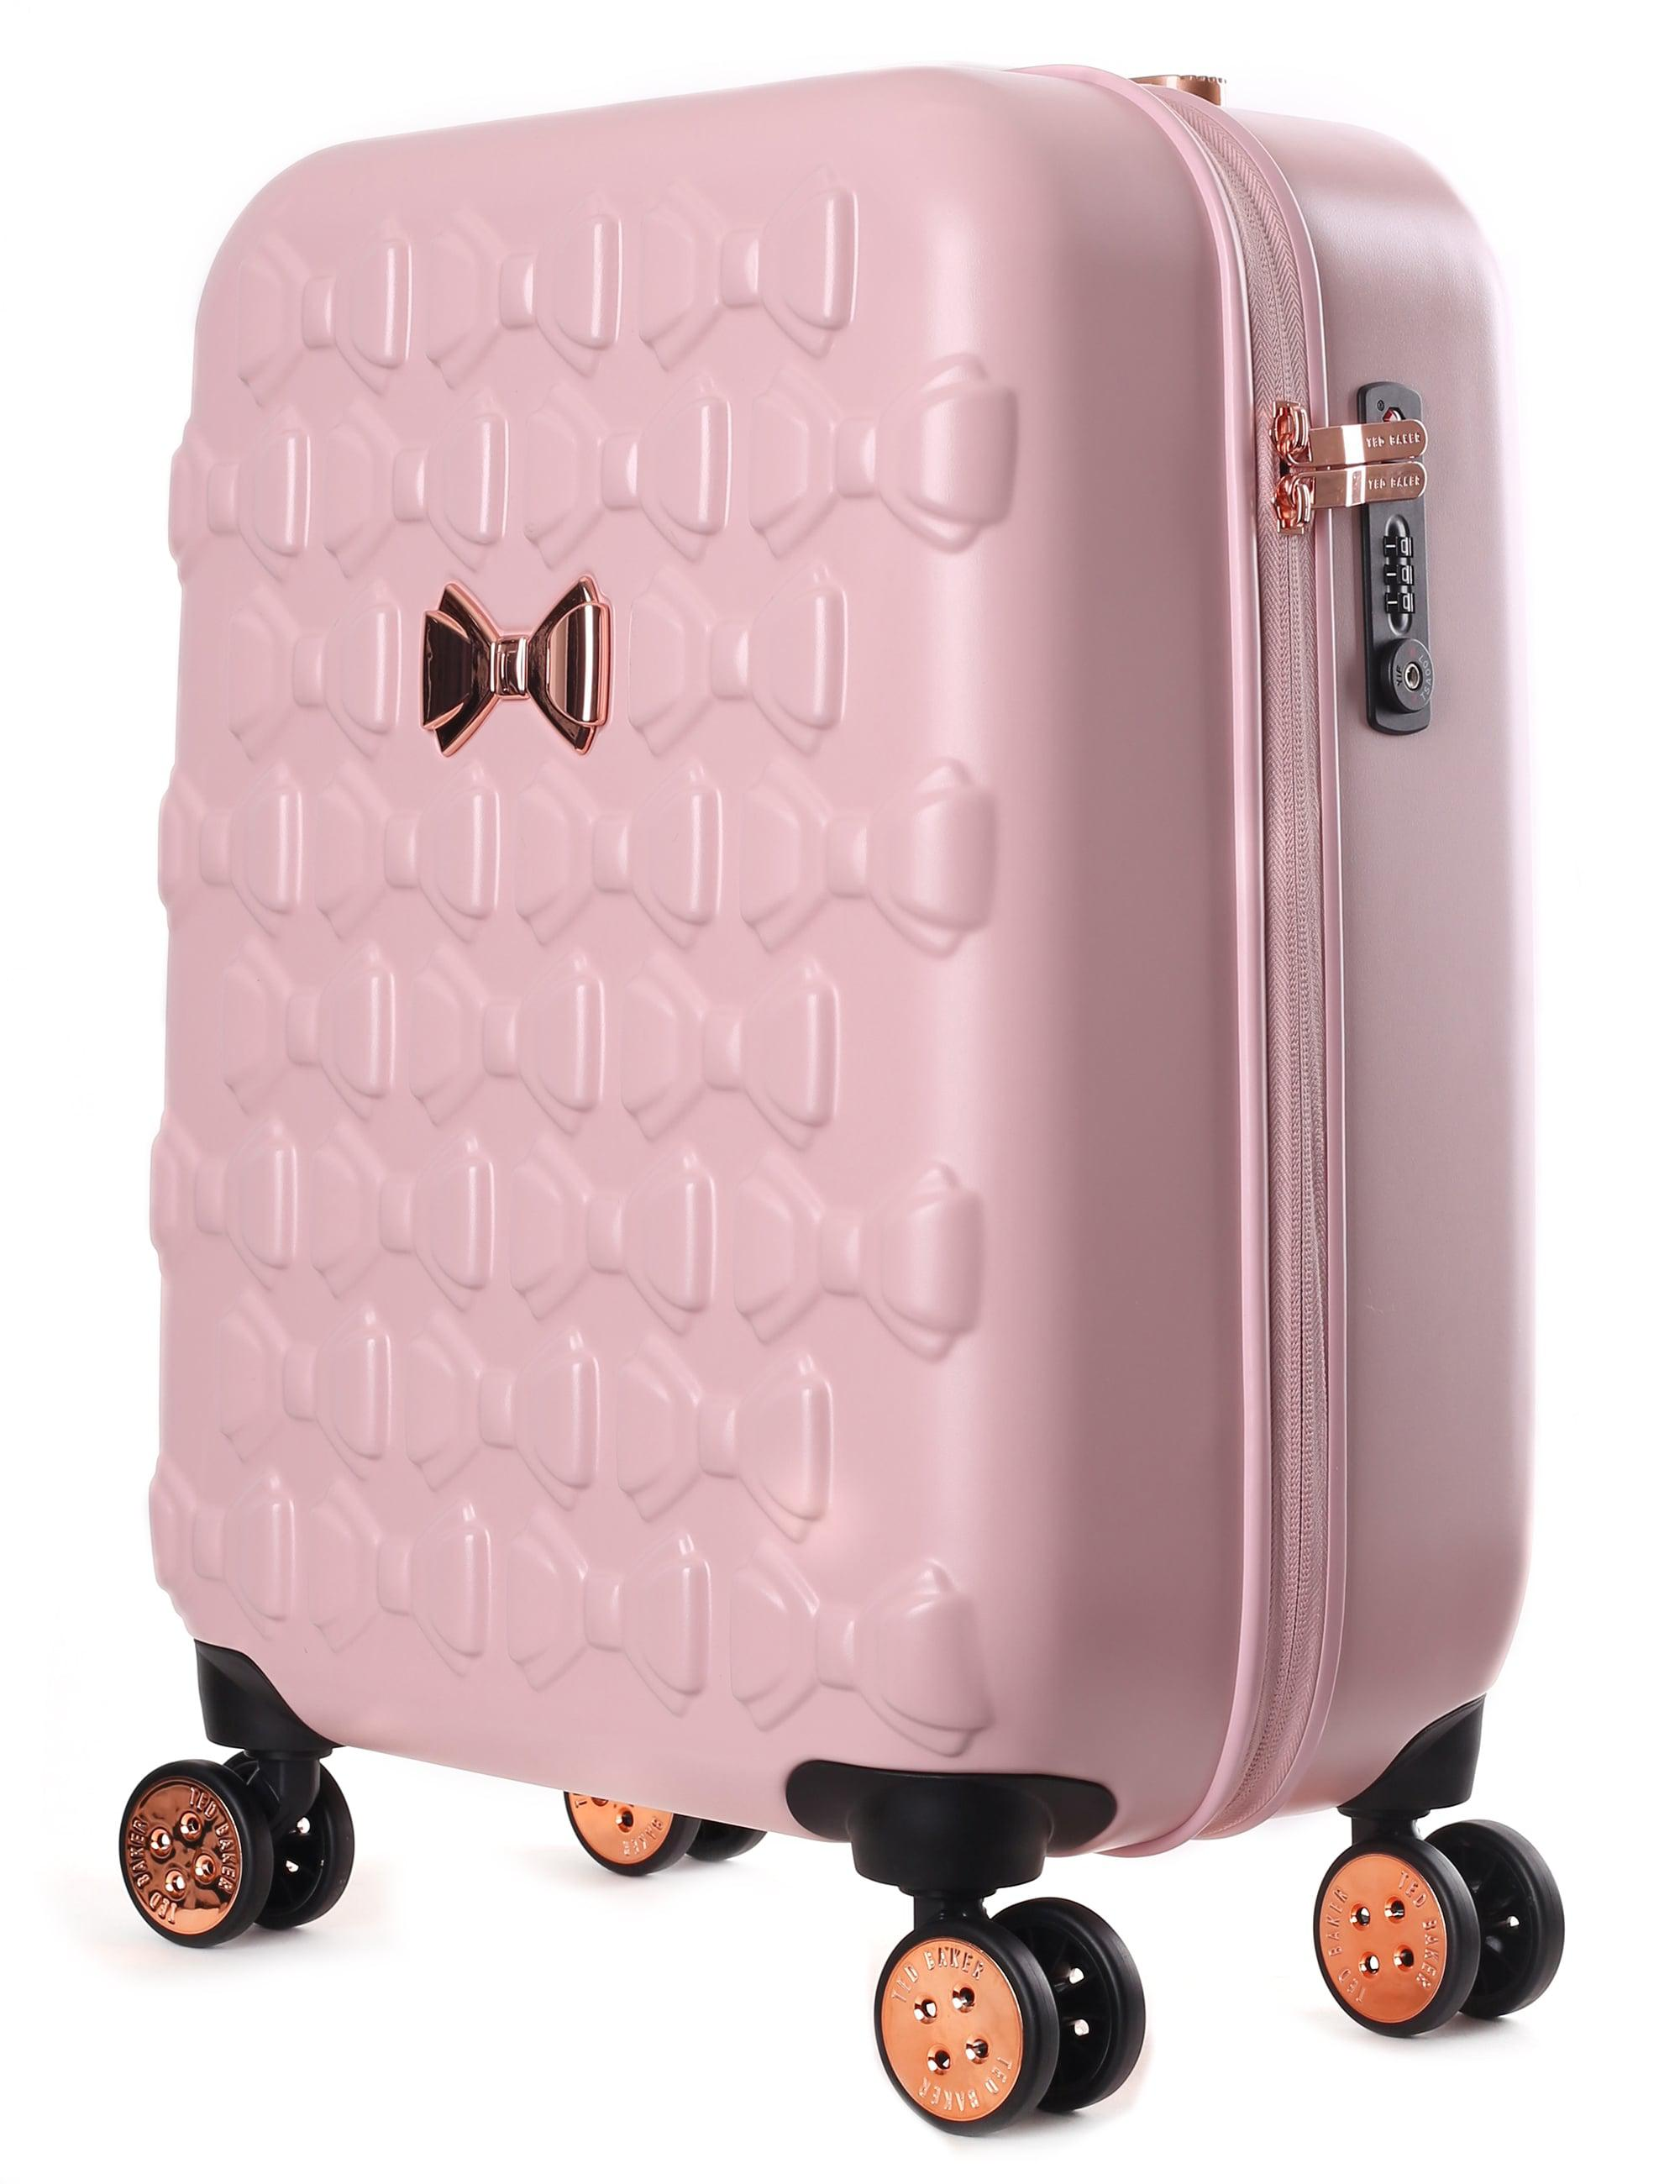 82cfb0b7c7c30 Ted Baker Beaue Women s Moulded Bow 4 Wheel Trolley Pink in Pink - Lyst